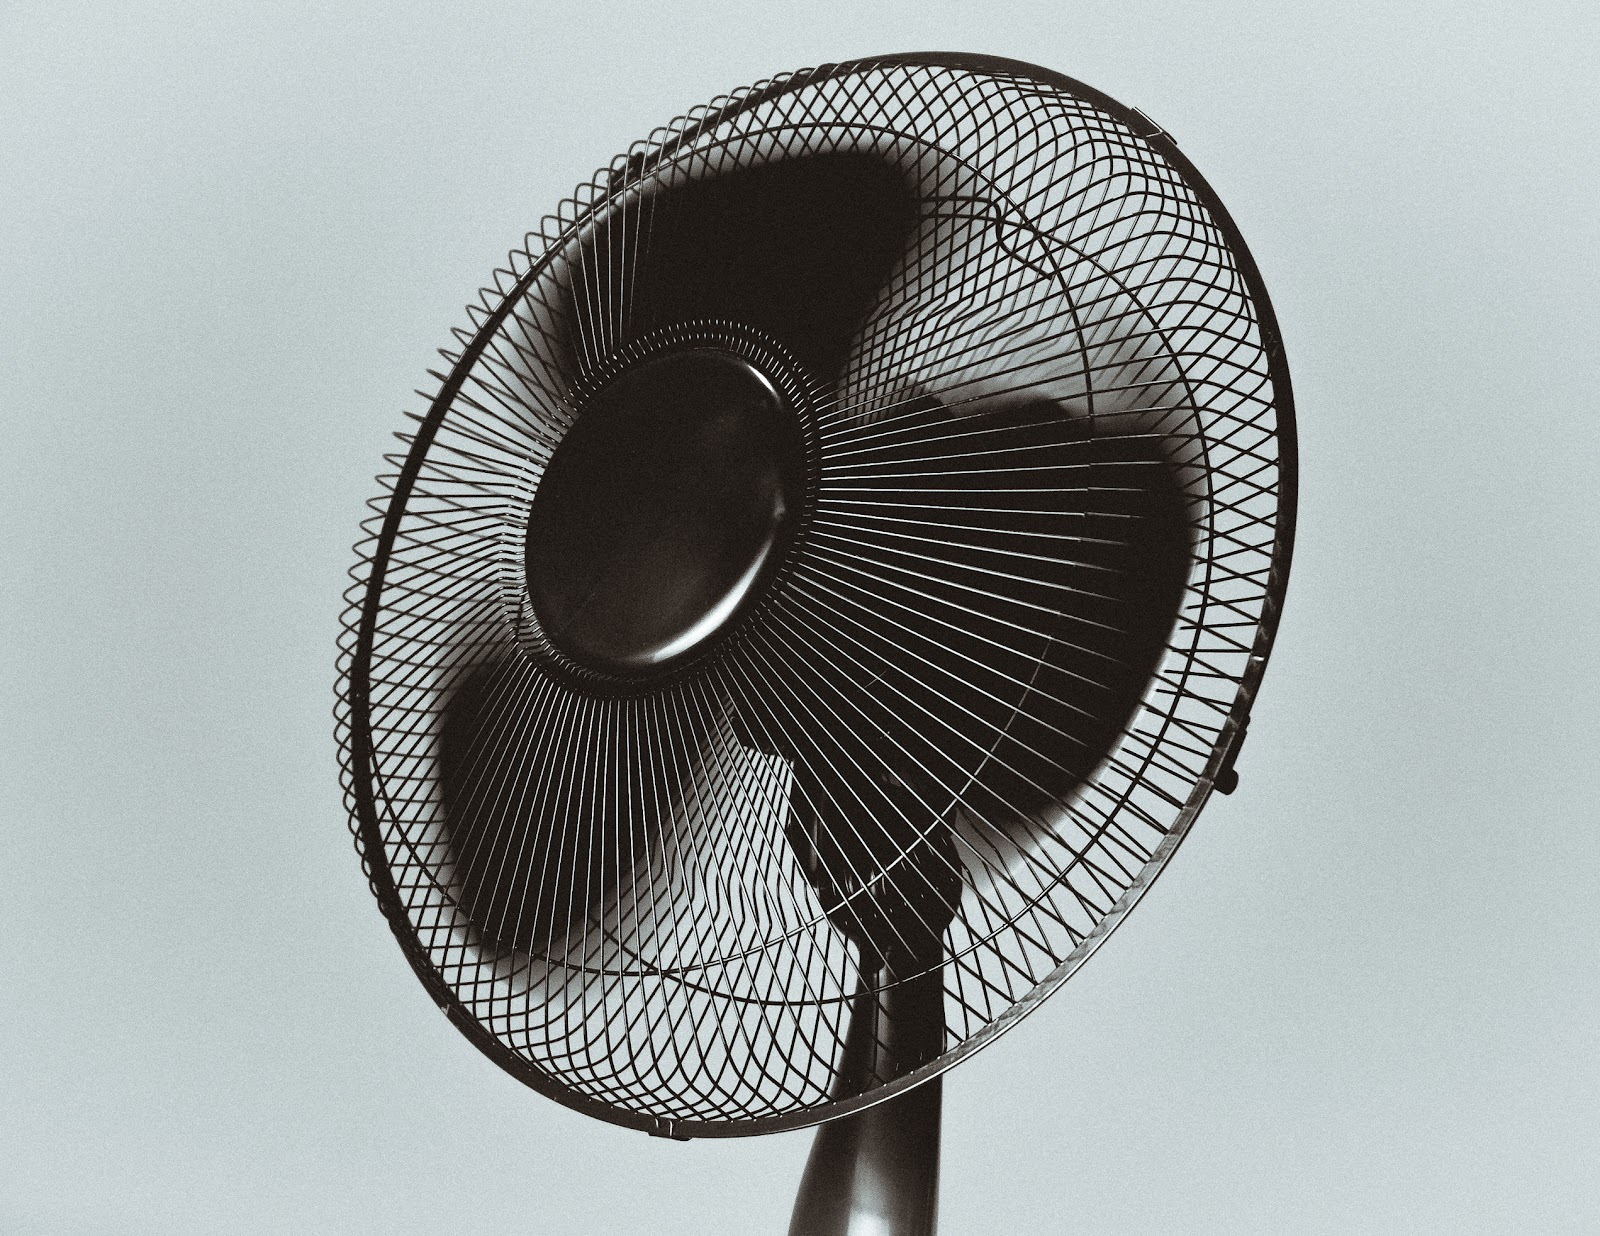 fan-ac-poor.jpg